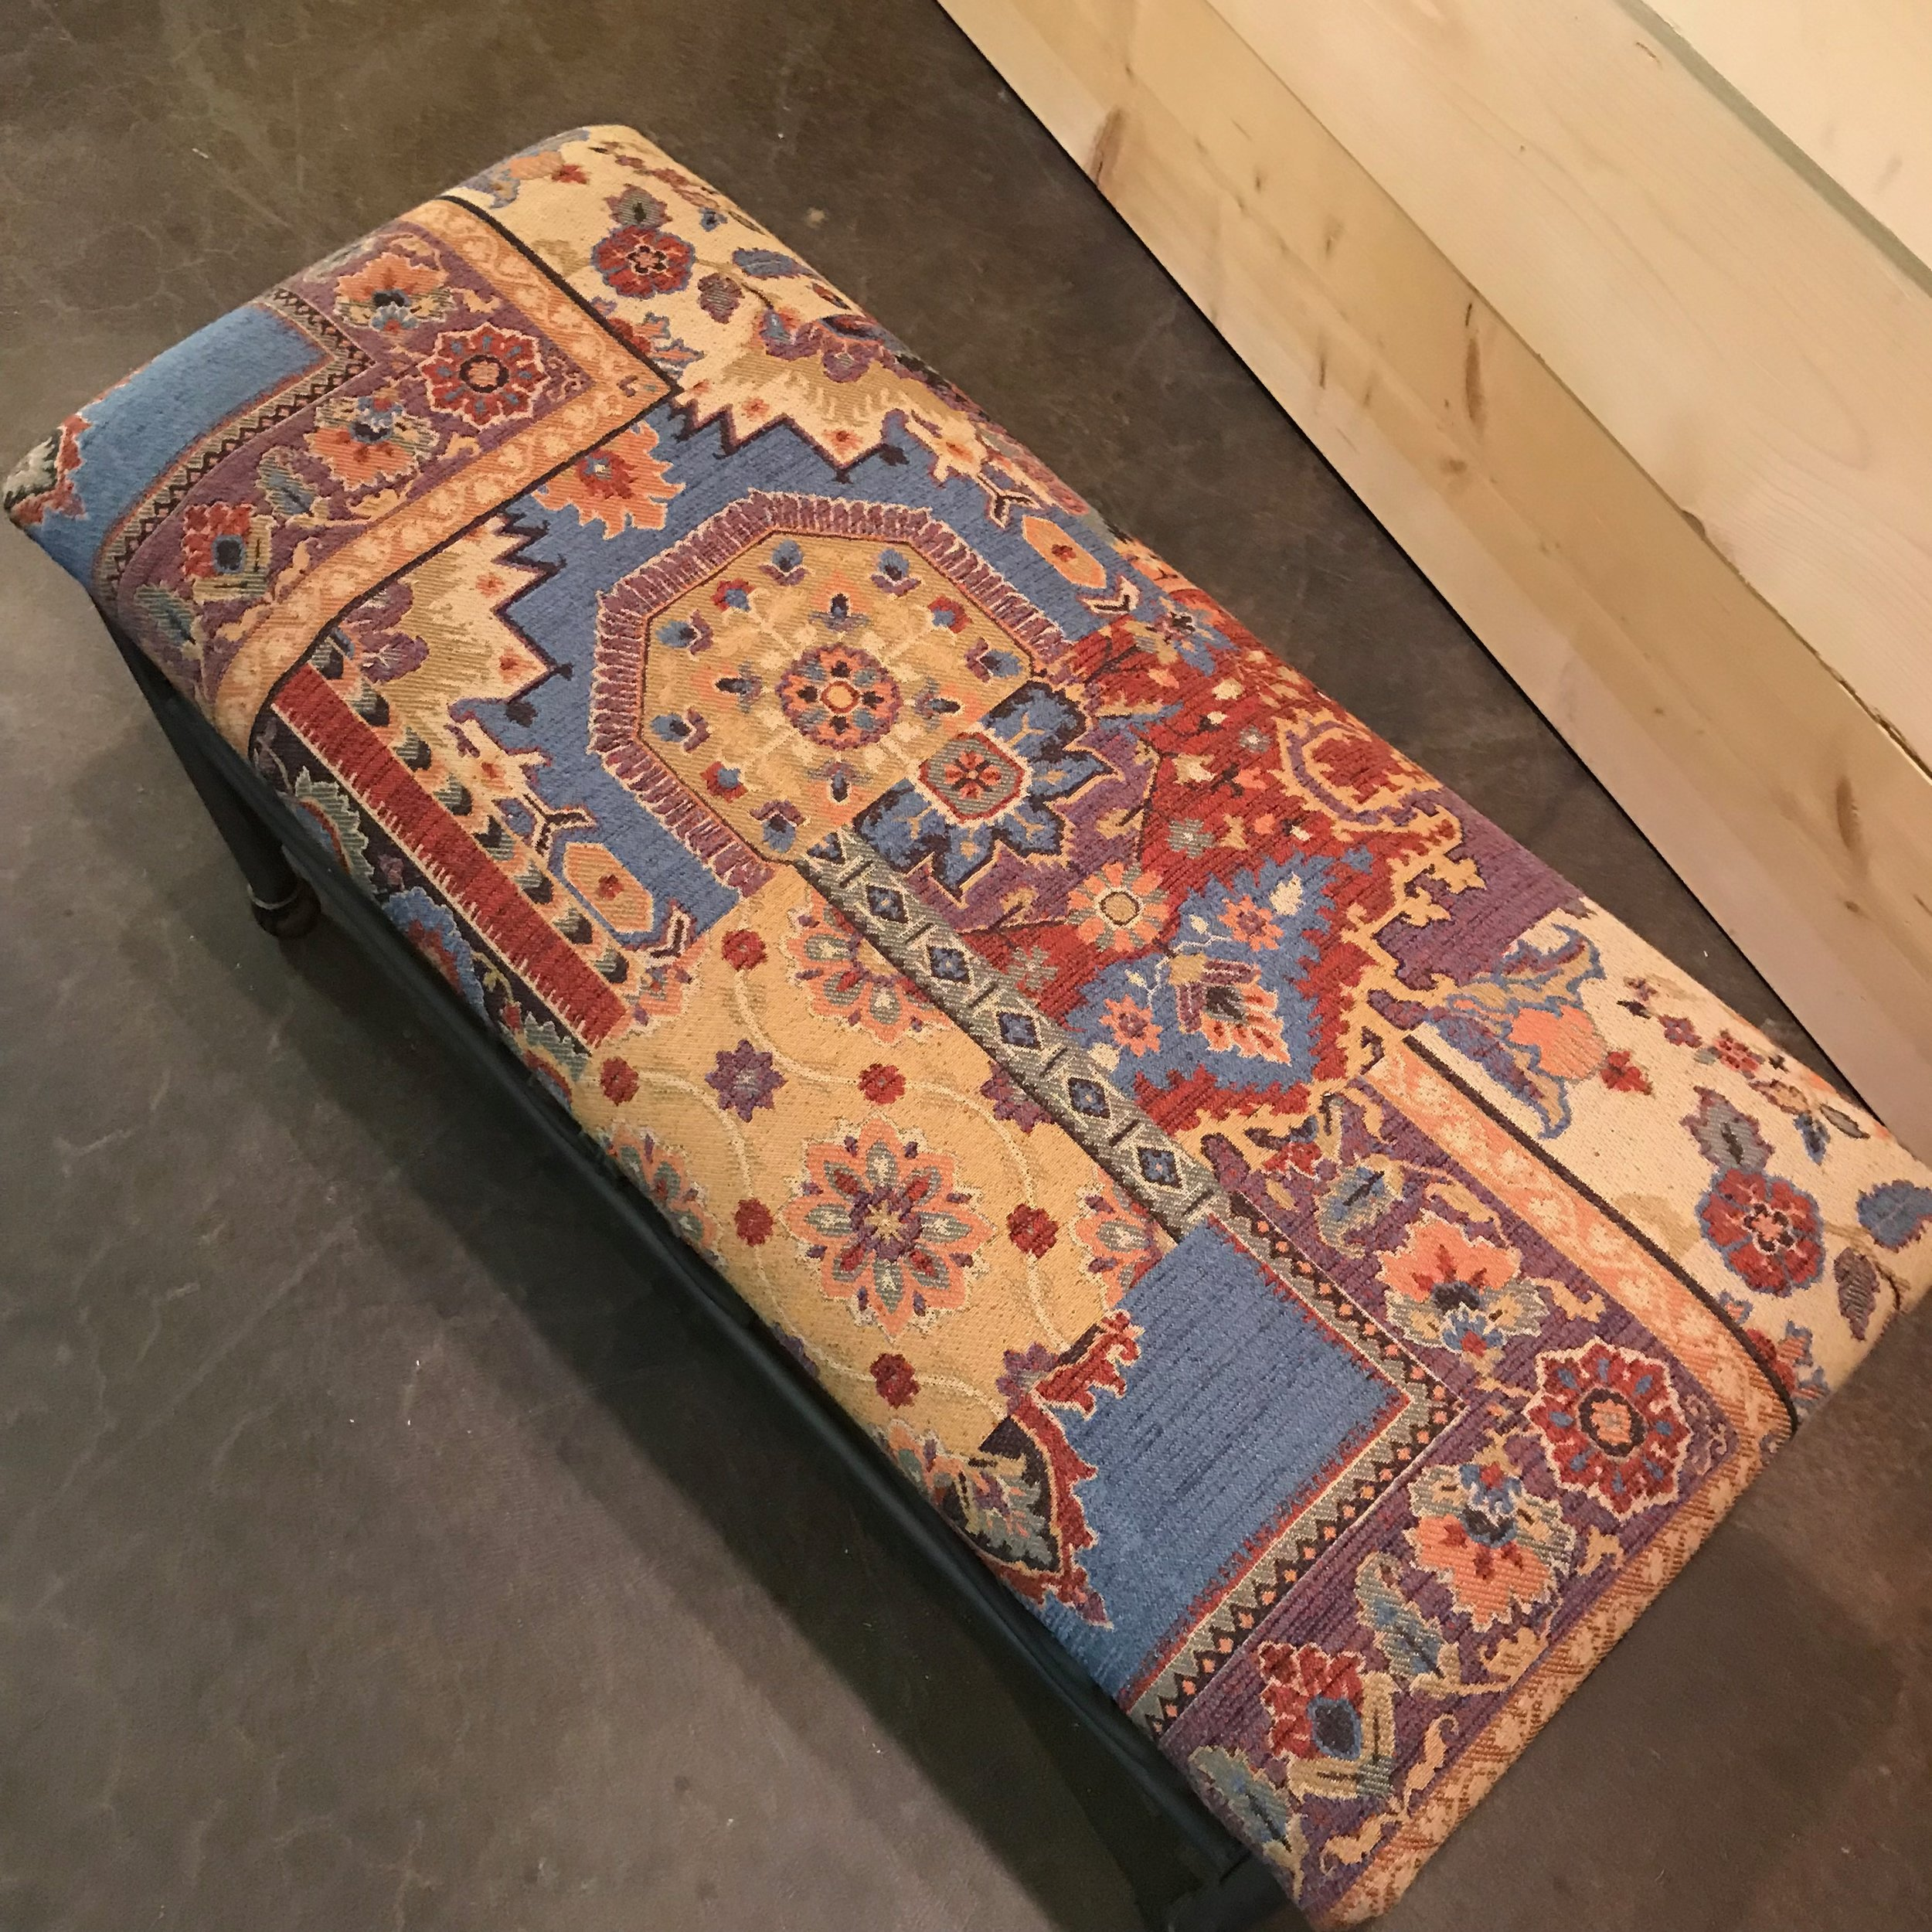 Tapestry fabric on the top of a metal scrolled bench.